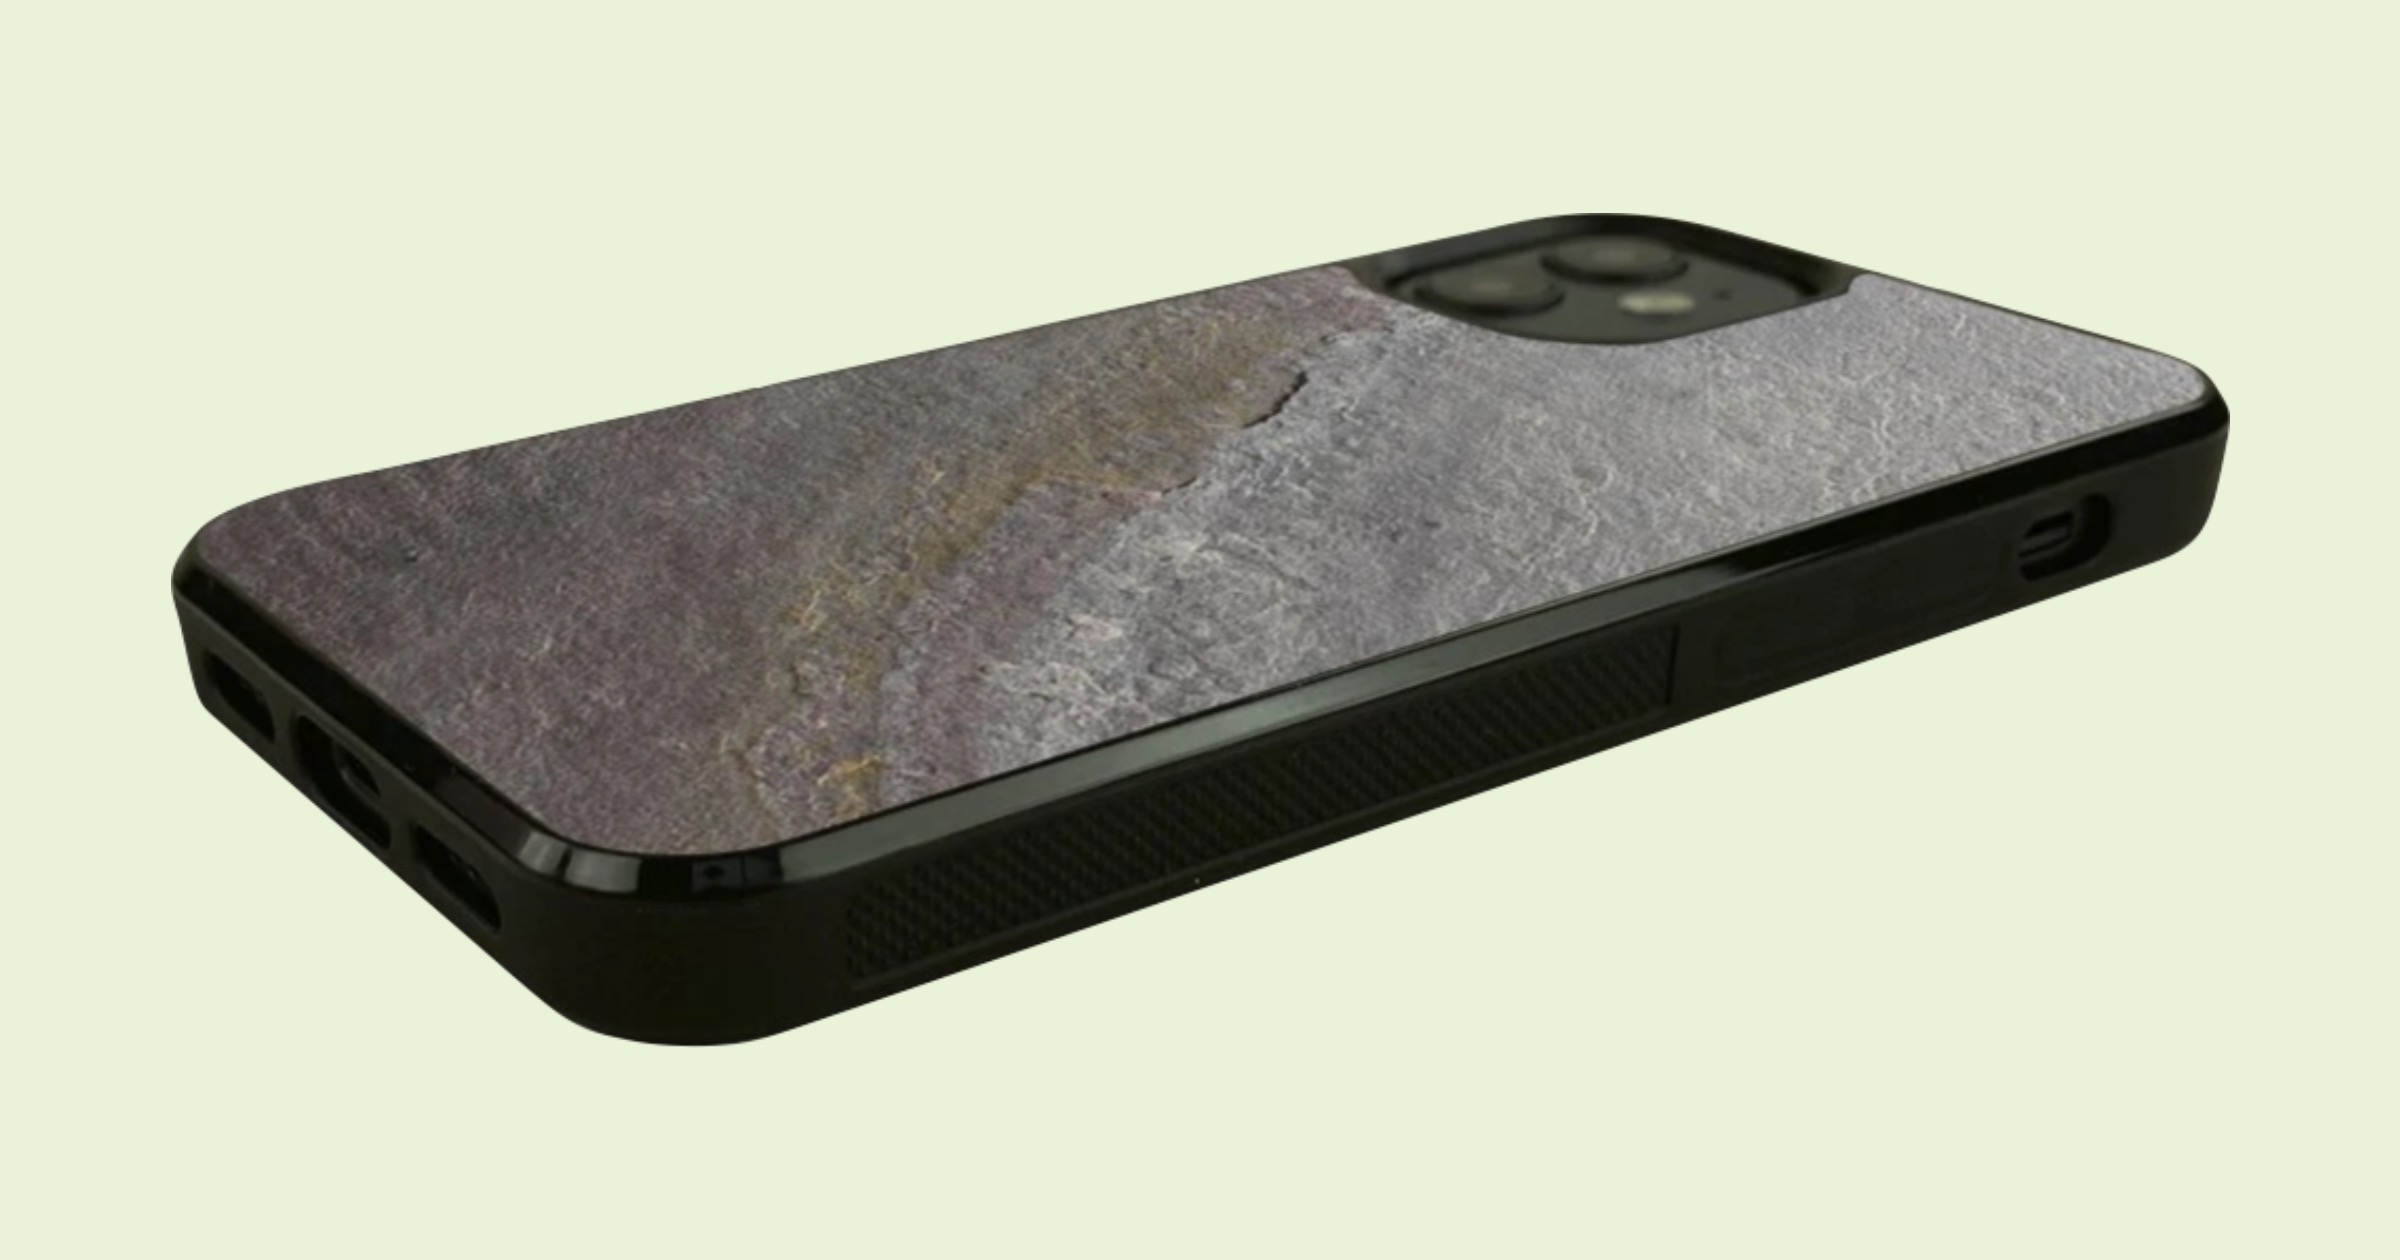 These iPhone 12 Cases Include Real Wood and Stone